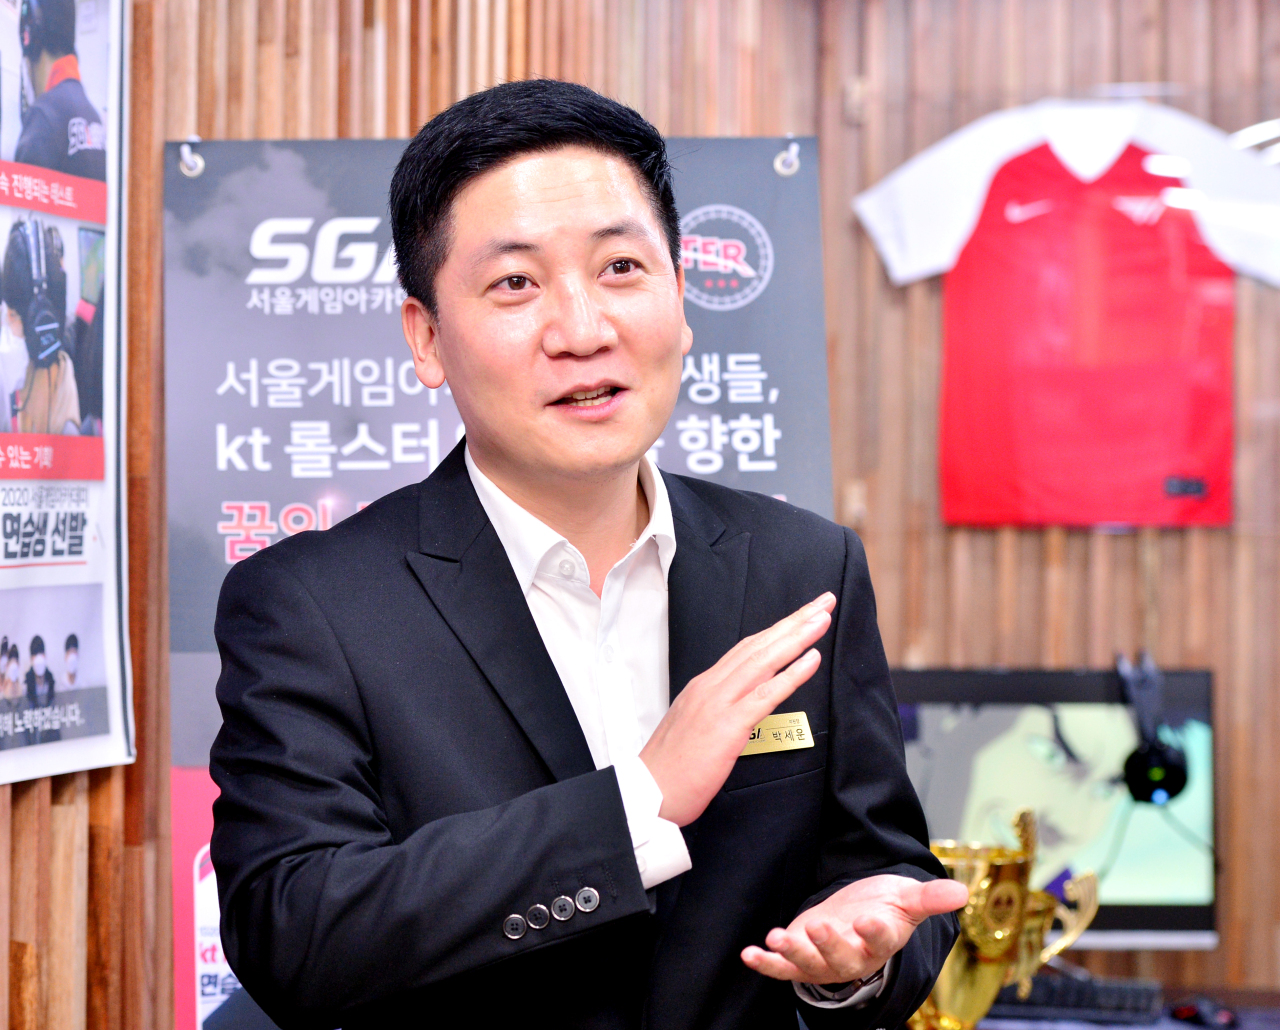 Deputy director Park Se-woon speaks during an interview with The Korea Herald at Seoul Game Academy in Jongno, central Seoul, on Oct. 1. (Park Hyun-koo/The Korea Herald)